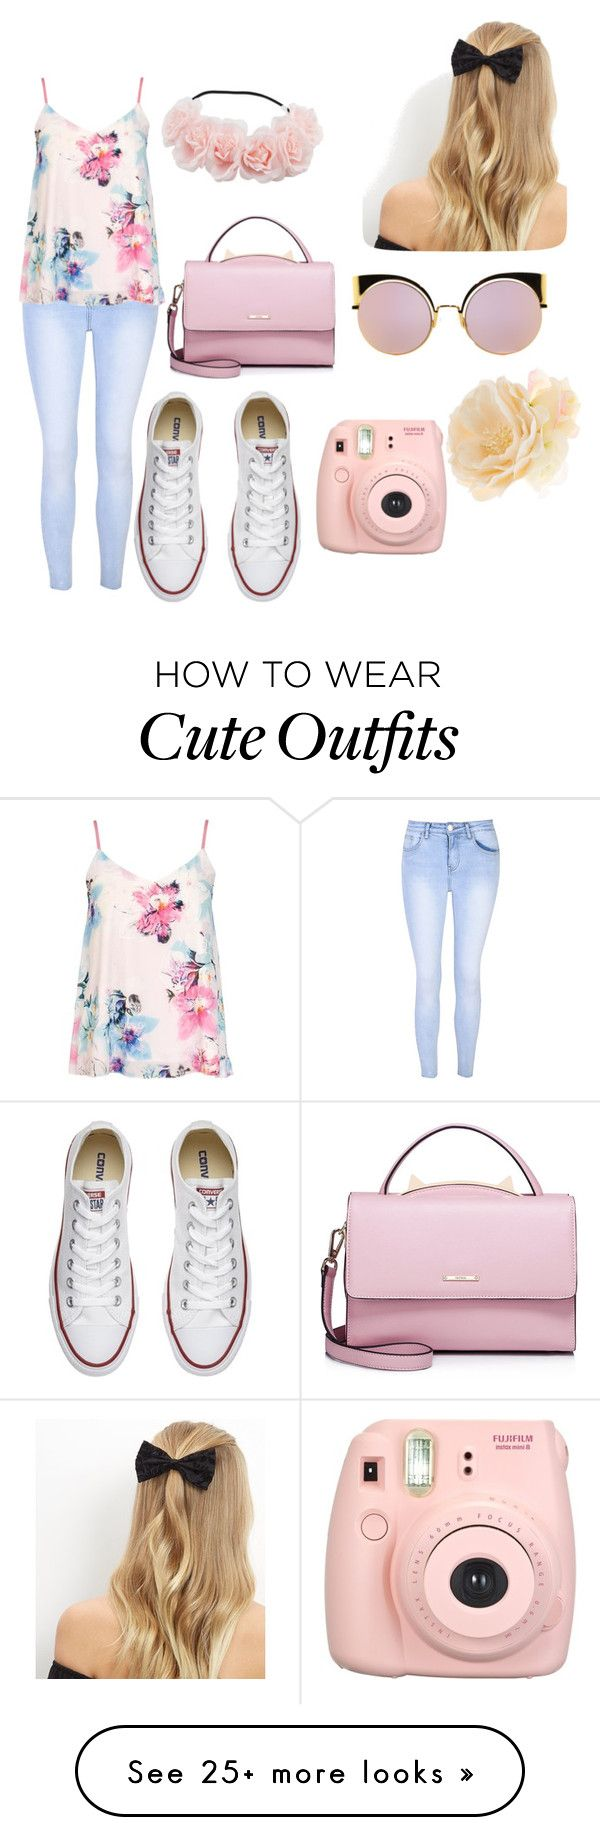 """Cute school outfit"" by da-queen078 on Polyvore featuring Glamorous, Dorothy Perkins, Converse, WithChic, Fujifilm, New Look, Fendi and Accessorize"